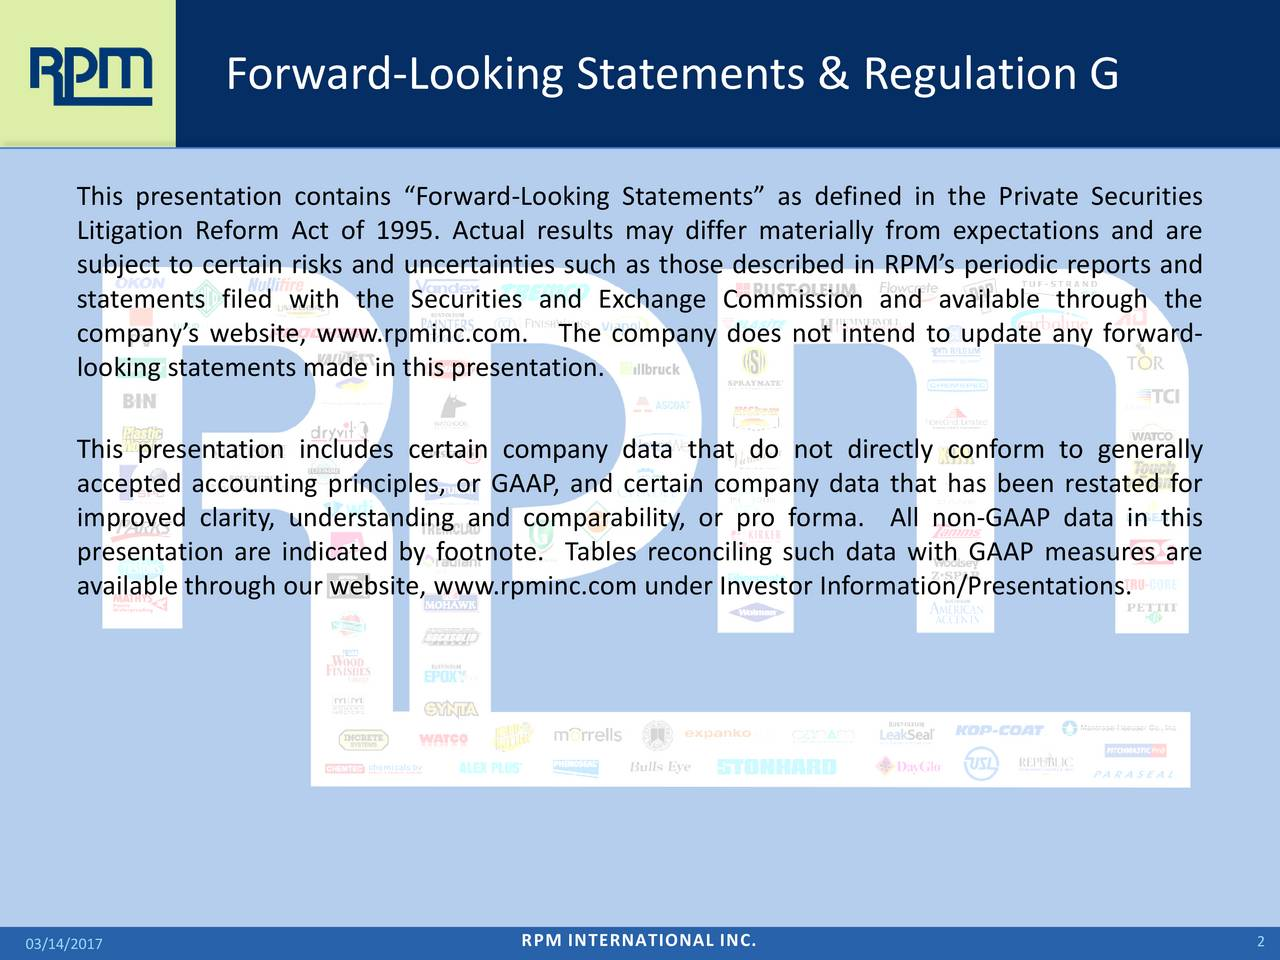 This presentation contains Forward-Looking Statements as defined in the Private Securities Litigation Reform Act of 1995. Actual results may differ materially from expectations and are subject to certain risks and uncertainties such as those described in RPMs periodic reports and statements filed with the Securities and Exchange Commission and available through the companys website, www.rpminc.com. The company does not intend to update any forward- looking statements made in this presentation. This presentation includes certain company data that do not directly conform to generally accepted accounting principles, or GAAP, and certain company data that has been restated for improved clarity, understanding and comparability, or pro forma. All non-GAAP data in this presentation are indicated by footnote. Tables reconciling such data with GAAP measures are available through our website, www.rpminc.com under Investor Information/Presentations. RPM INTERNATIONAL INC. 2